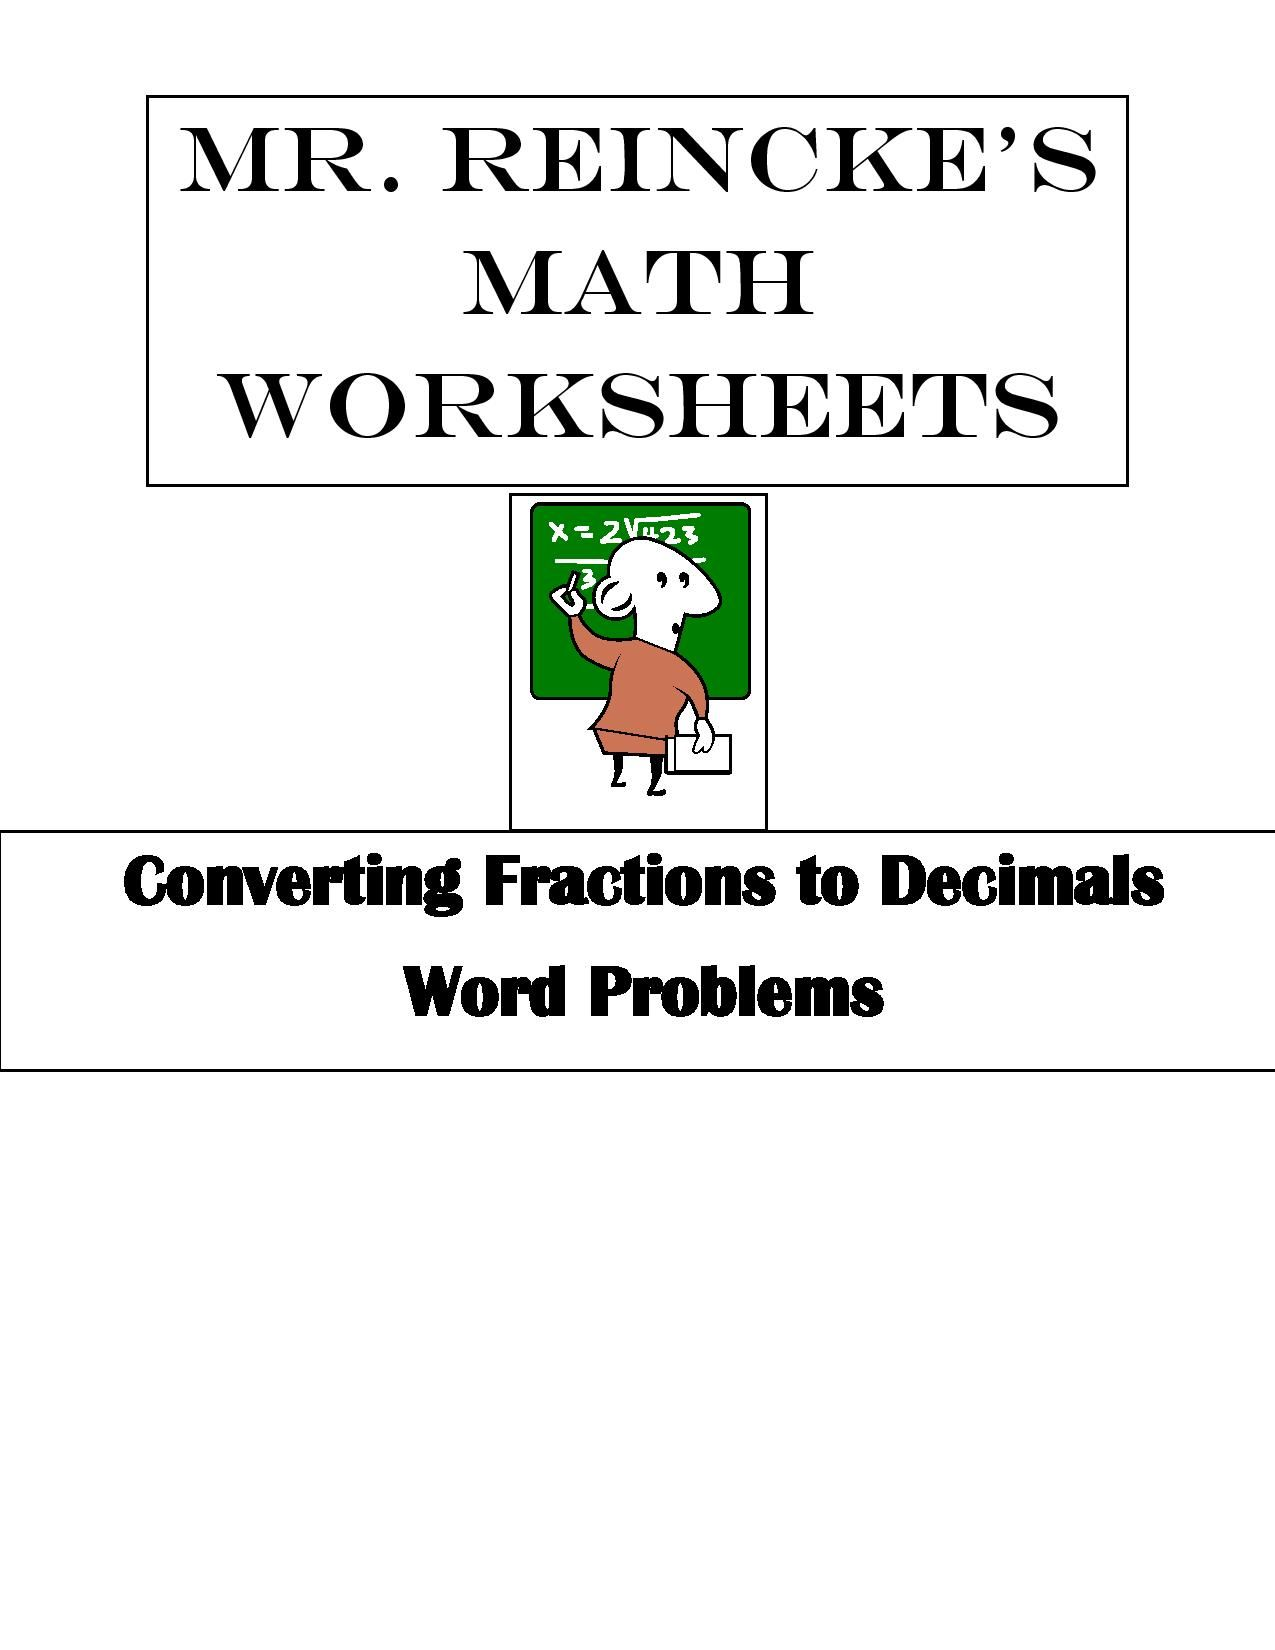 Converting Fractions to Decimals Word Problems 4 worksheets